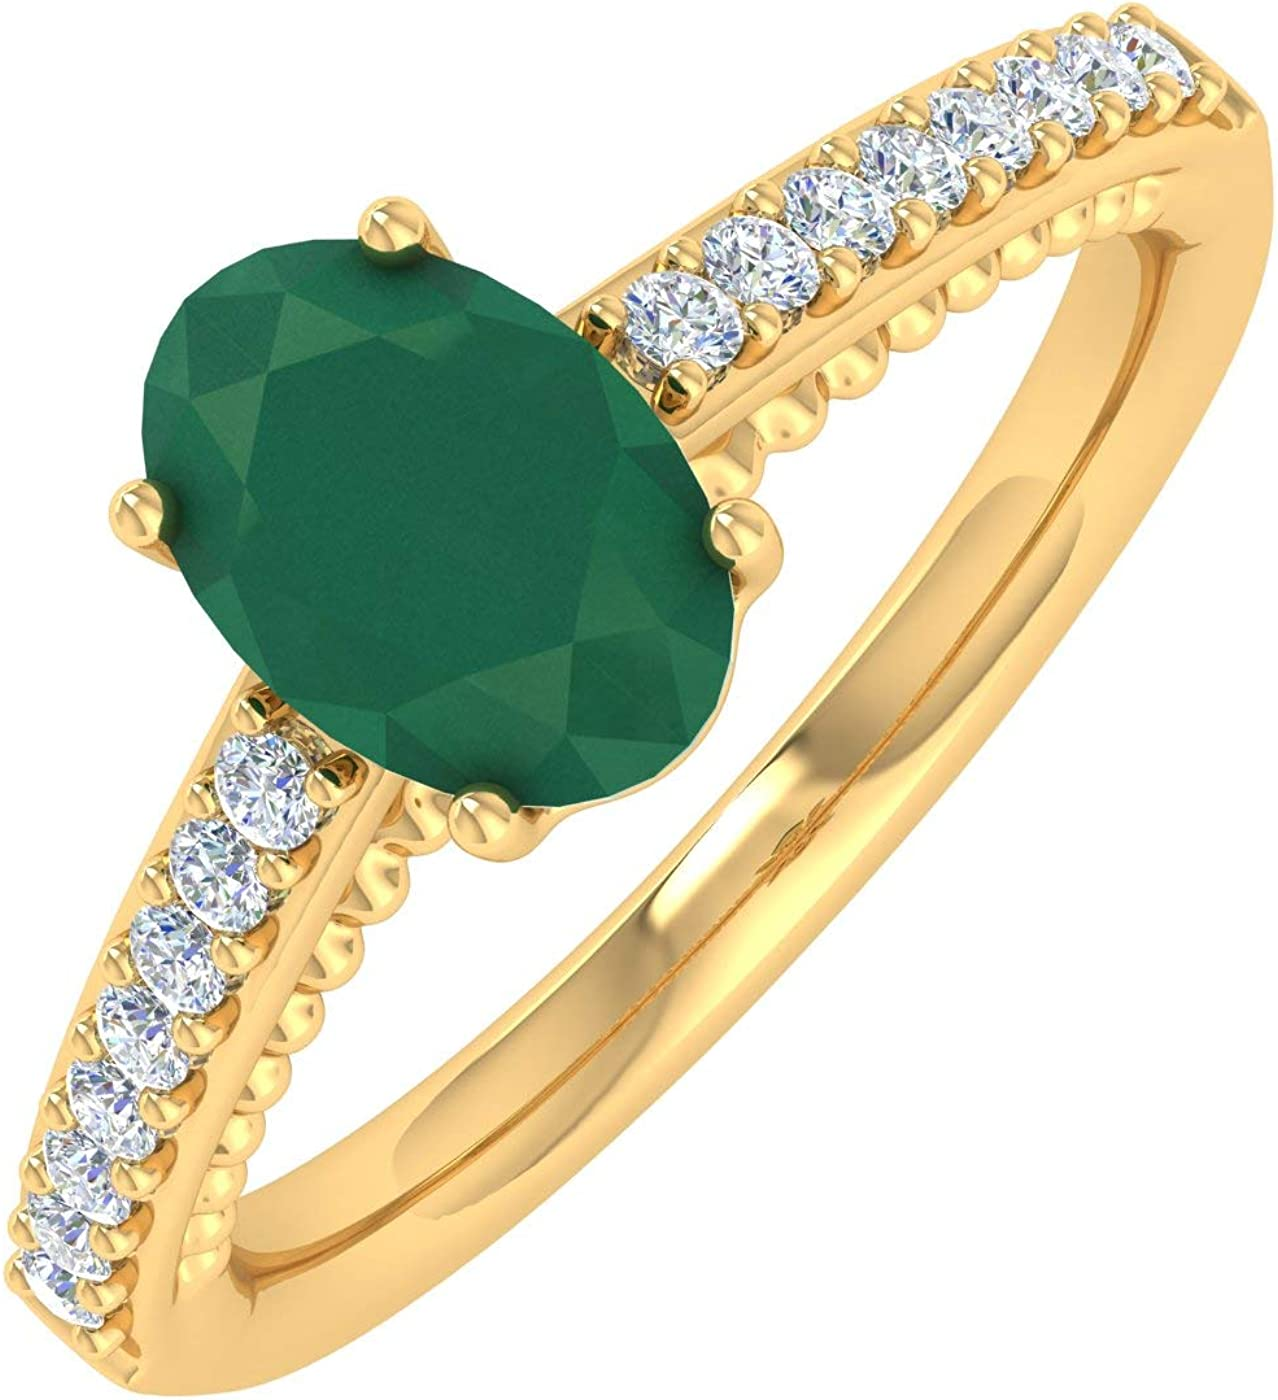 1 Carat Oval Shape Emerald and Round Diamond Solitaire Engagement Ring in 10K Gold